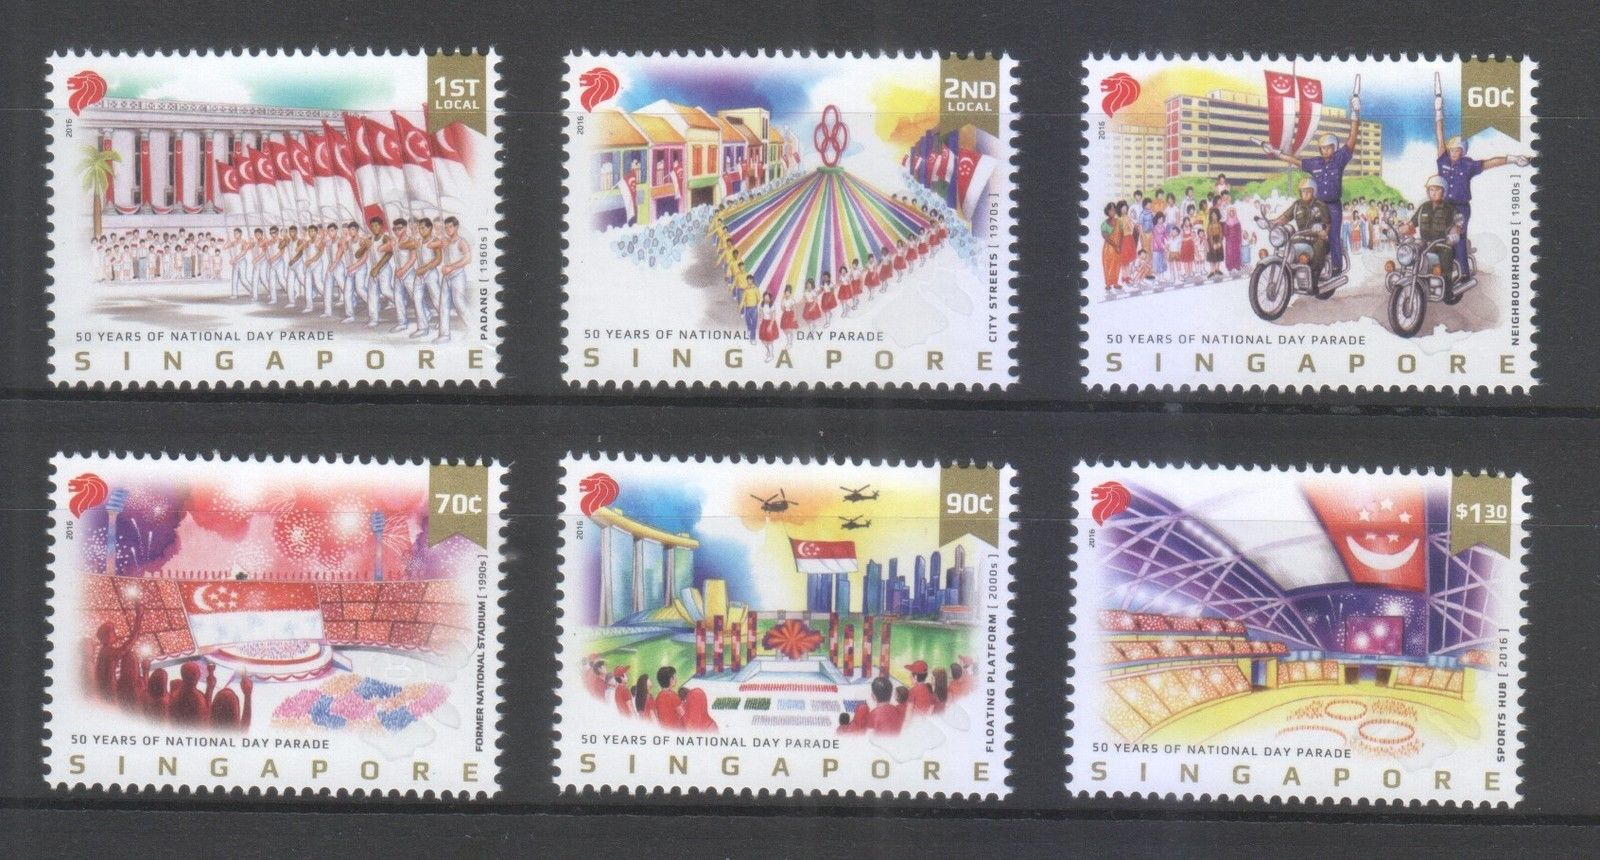 Singapore National Day 2016 NDP FDC Stamps 50 Years of Parade Mint, S$4.17